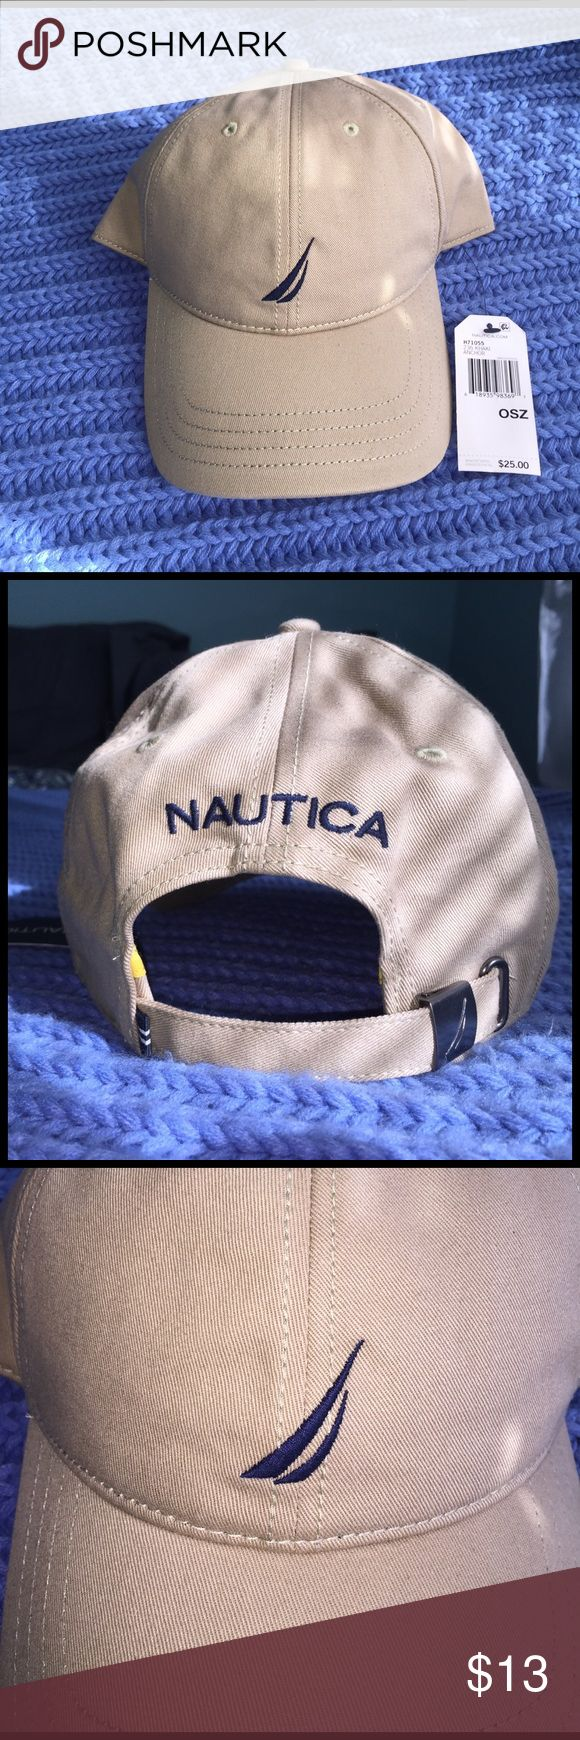 Nautica Khaki Baseball Cap NWT Brand new Nautica Hat! khaki color with navy blue logo on the front. One size although the hat is adjustable to almost any regular size head. Tags still on it! 😊 Nautica Accessories Hats